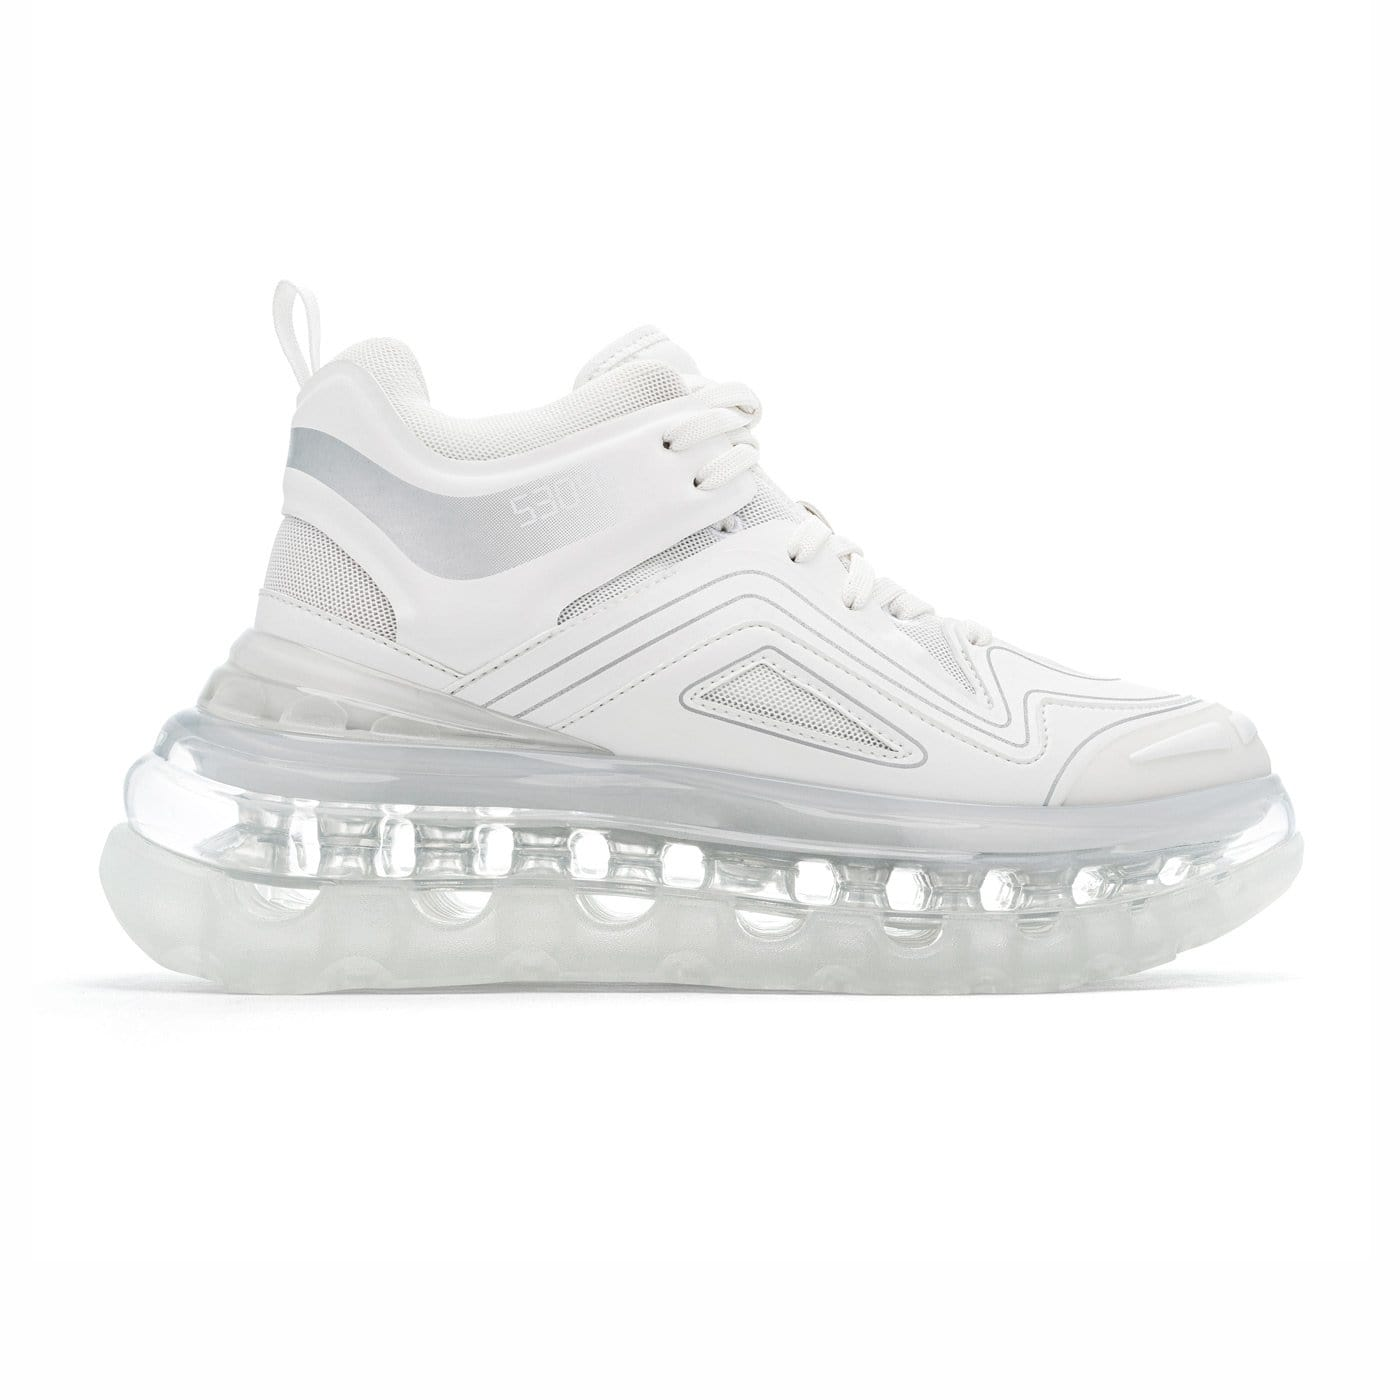 SHOES 53045 - BUMP'AIR - WHITE HT